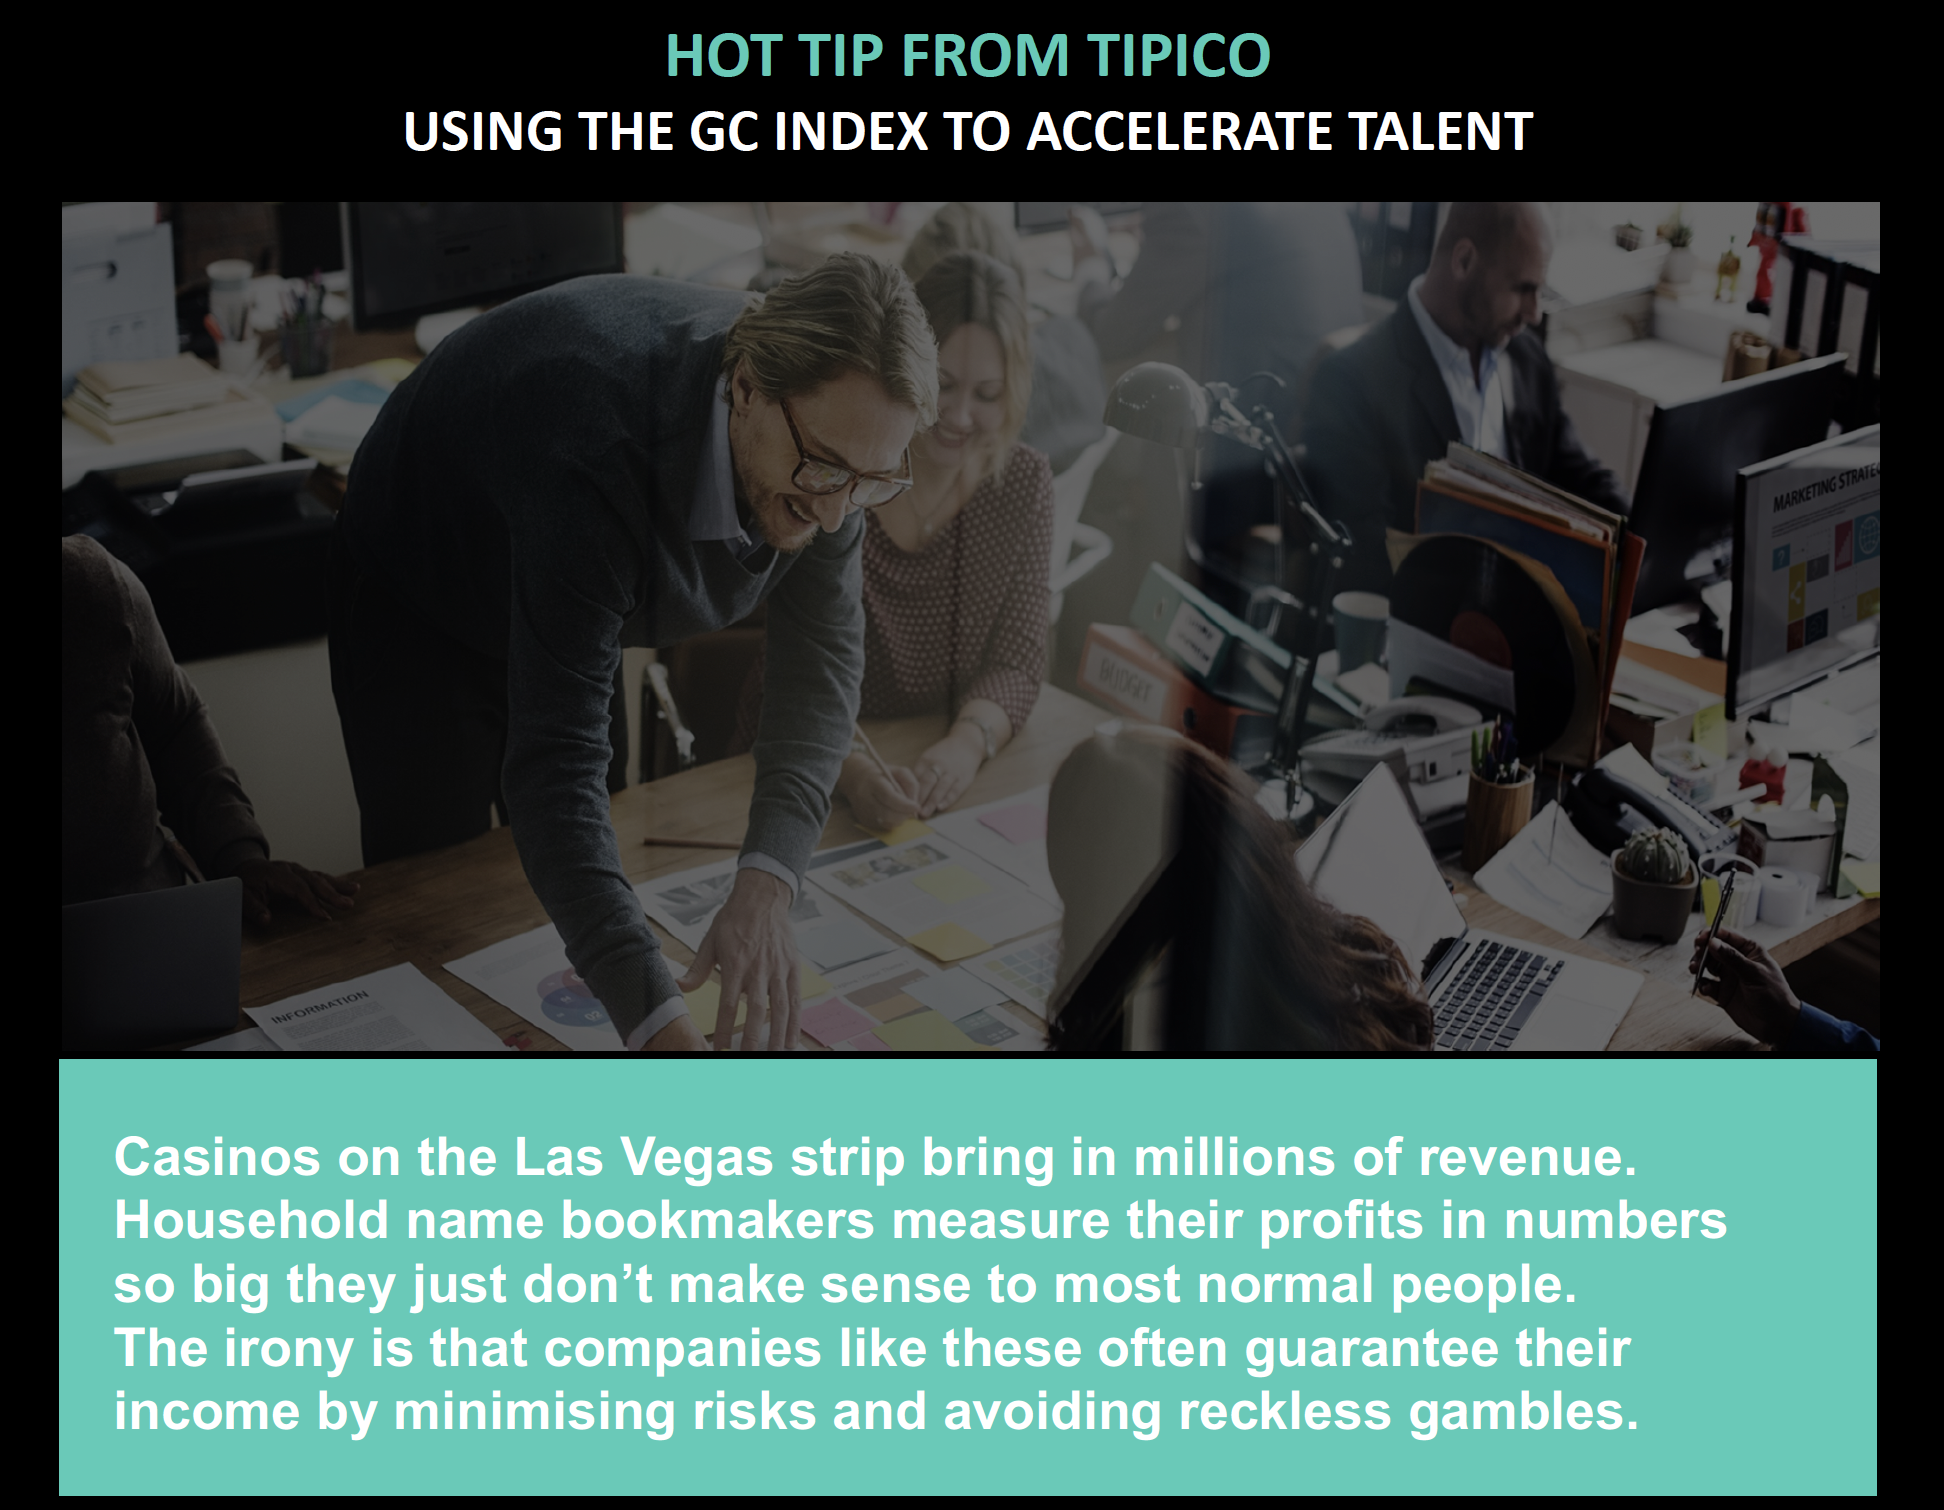 TIPICO GROUP USE THE GC INDEX<sup>®</sup> TO ACCELERATE TALENT